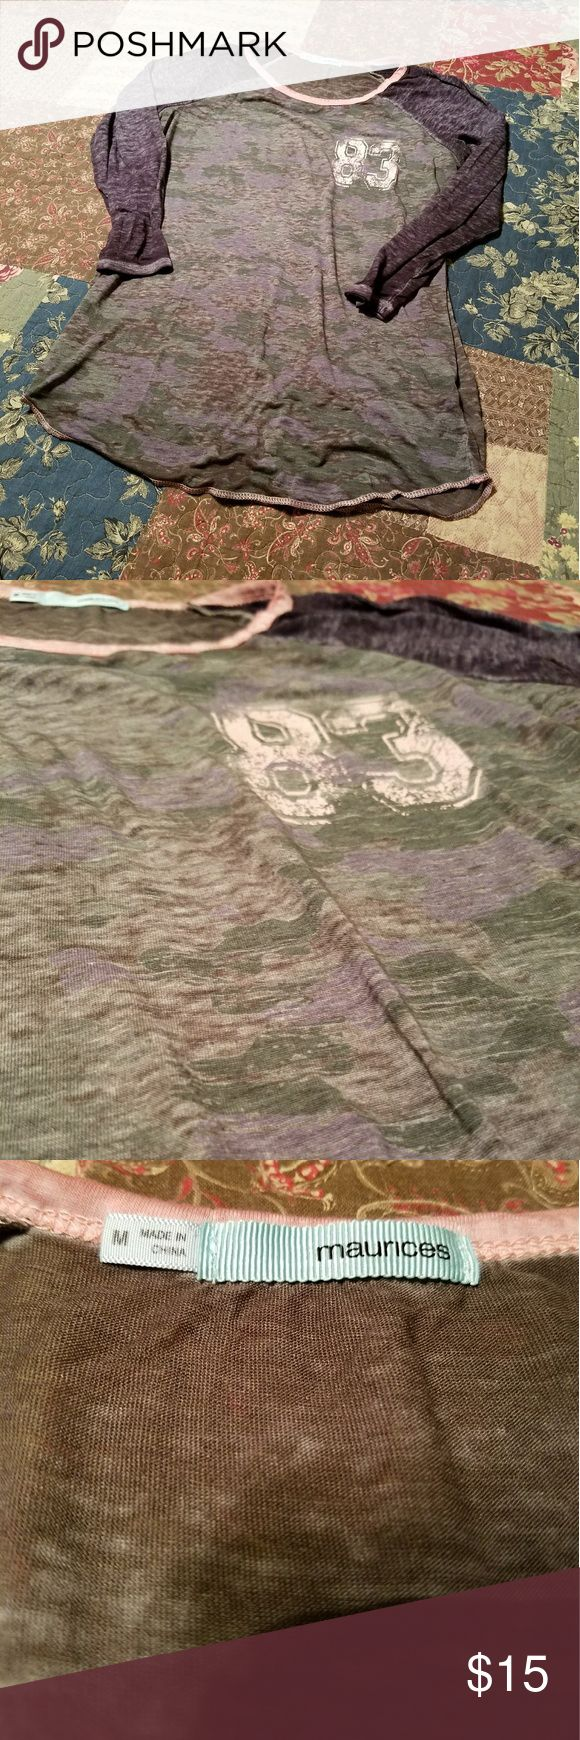 Maurices camo burnout 3/4 sleeve tee sz M Maurices camo burnout 3/4 sleeve tee sz M Maurices Tops